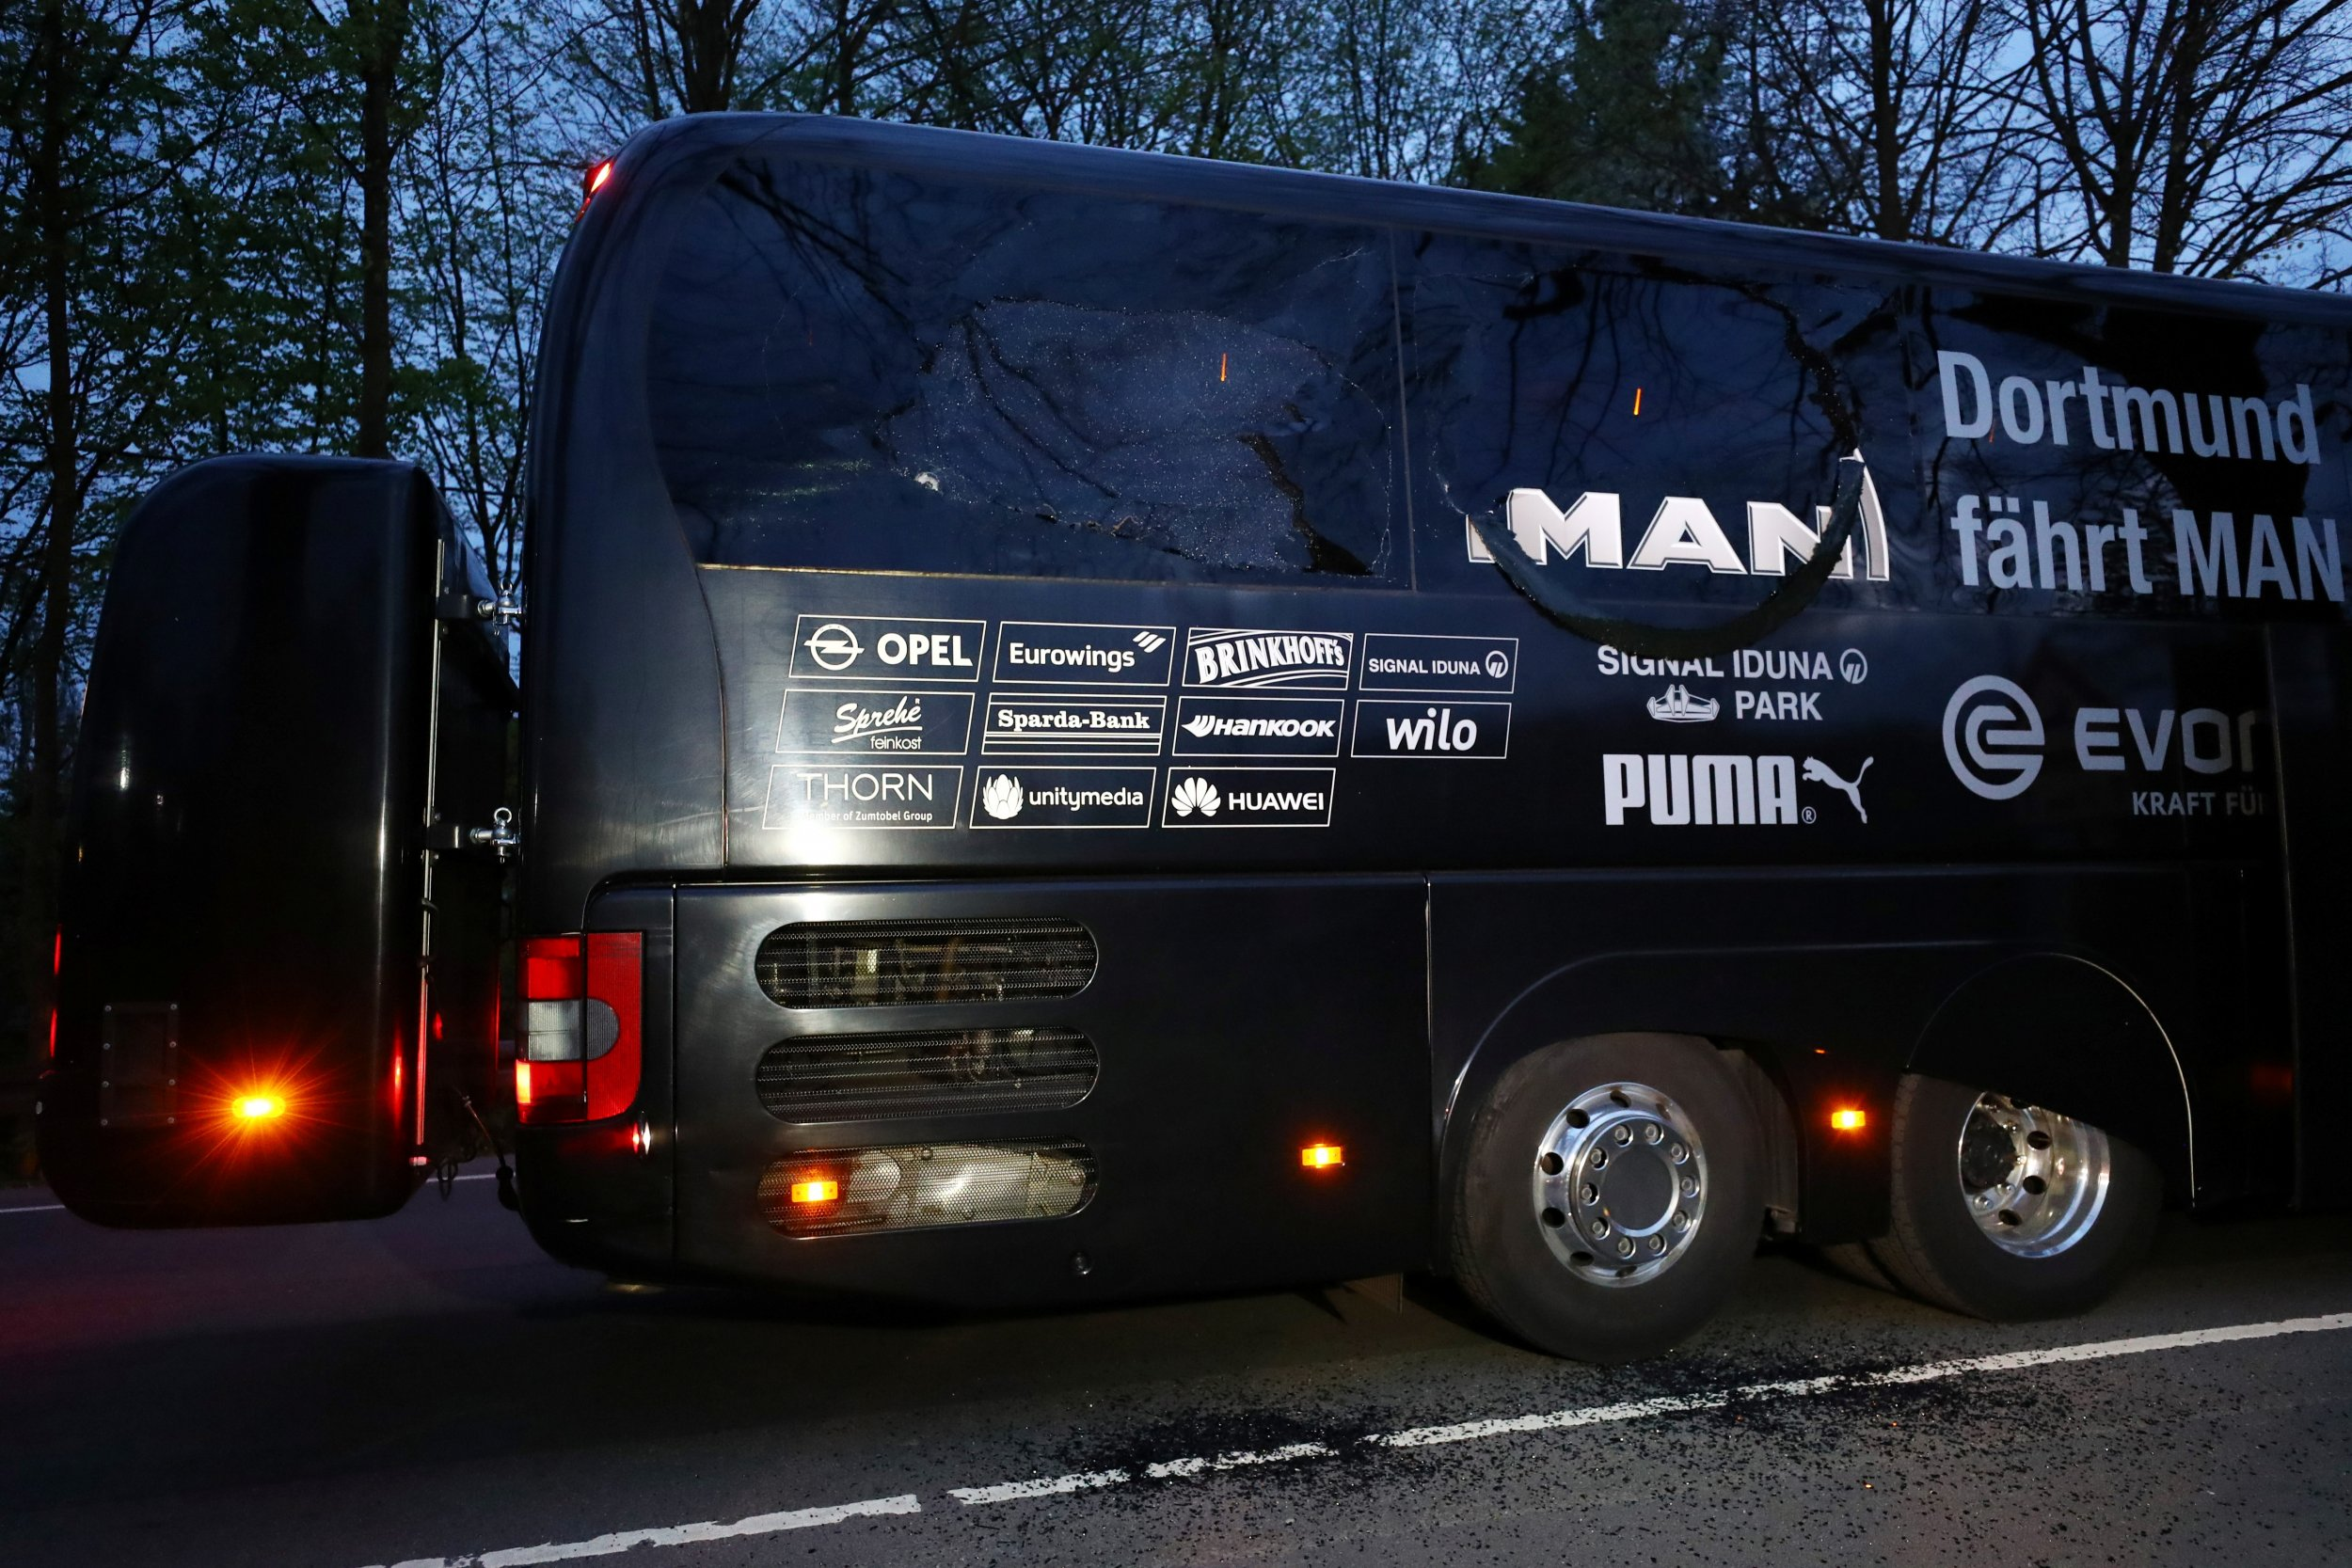 The Borussia Dortmund team bus is seen after an explosion near their hotel before the game against AS Monaco, Dortmund, Germany, April 11.